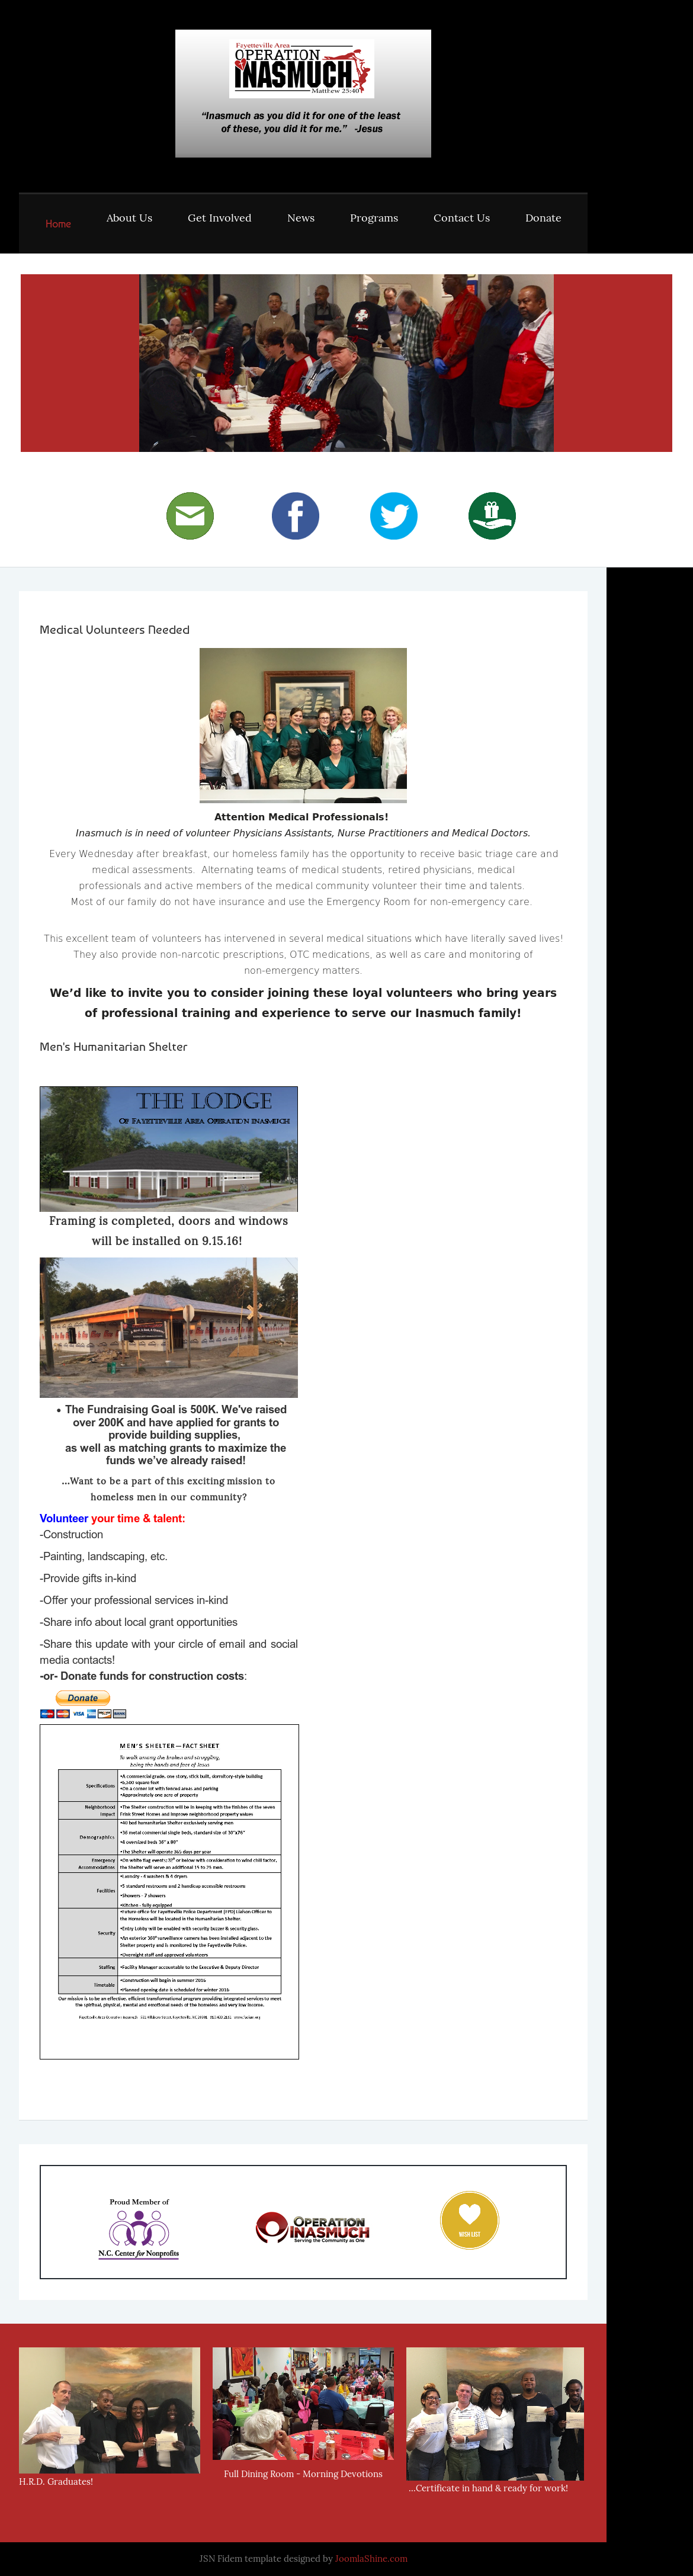 Fayetteville Area Operation Inasmuch Competitors, Revenue and ...